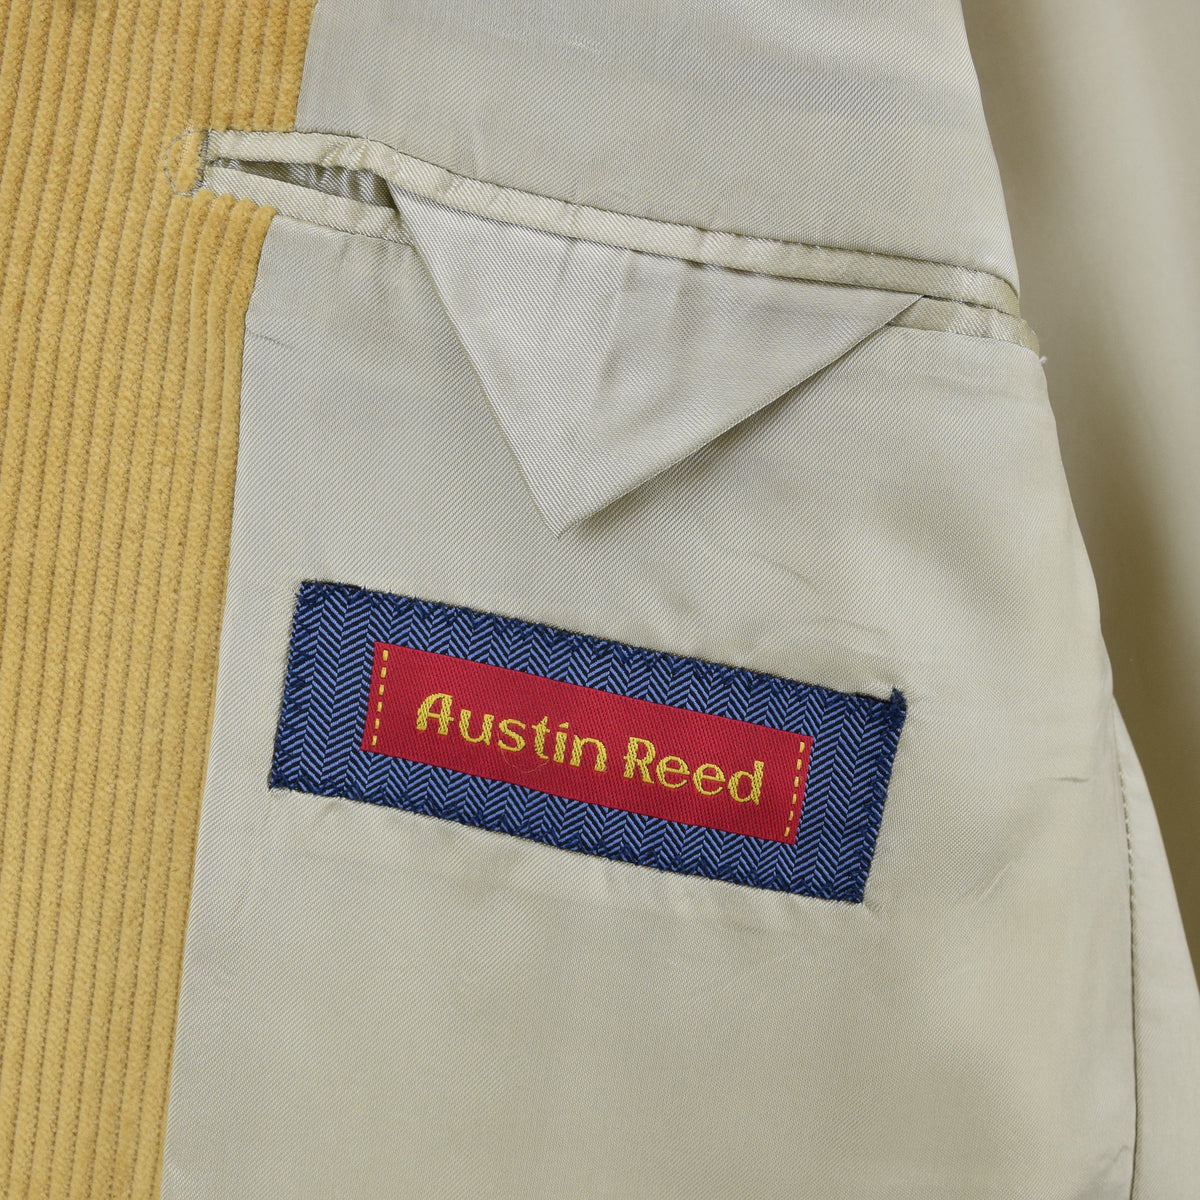 Vintage Austin Reed Sand 3 Button Cotton Corduroy Blazer Jacket 40 Reg internal pocket label